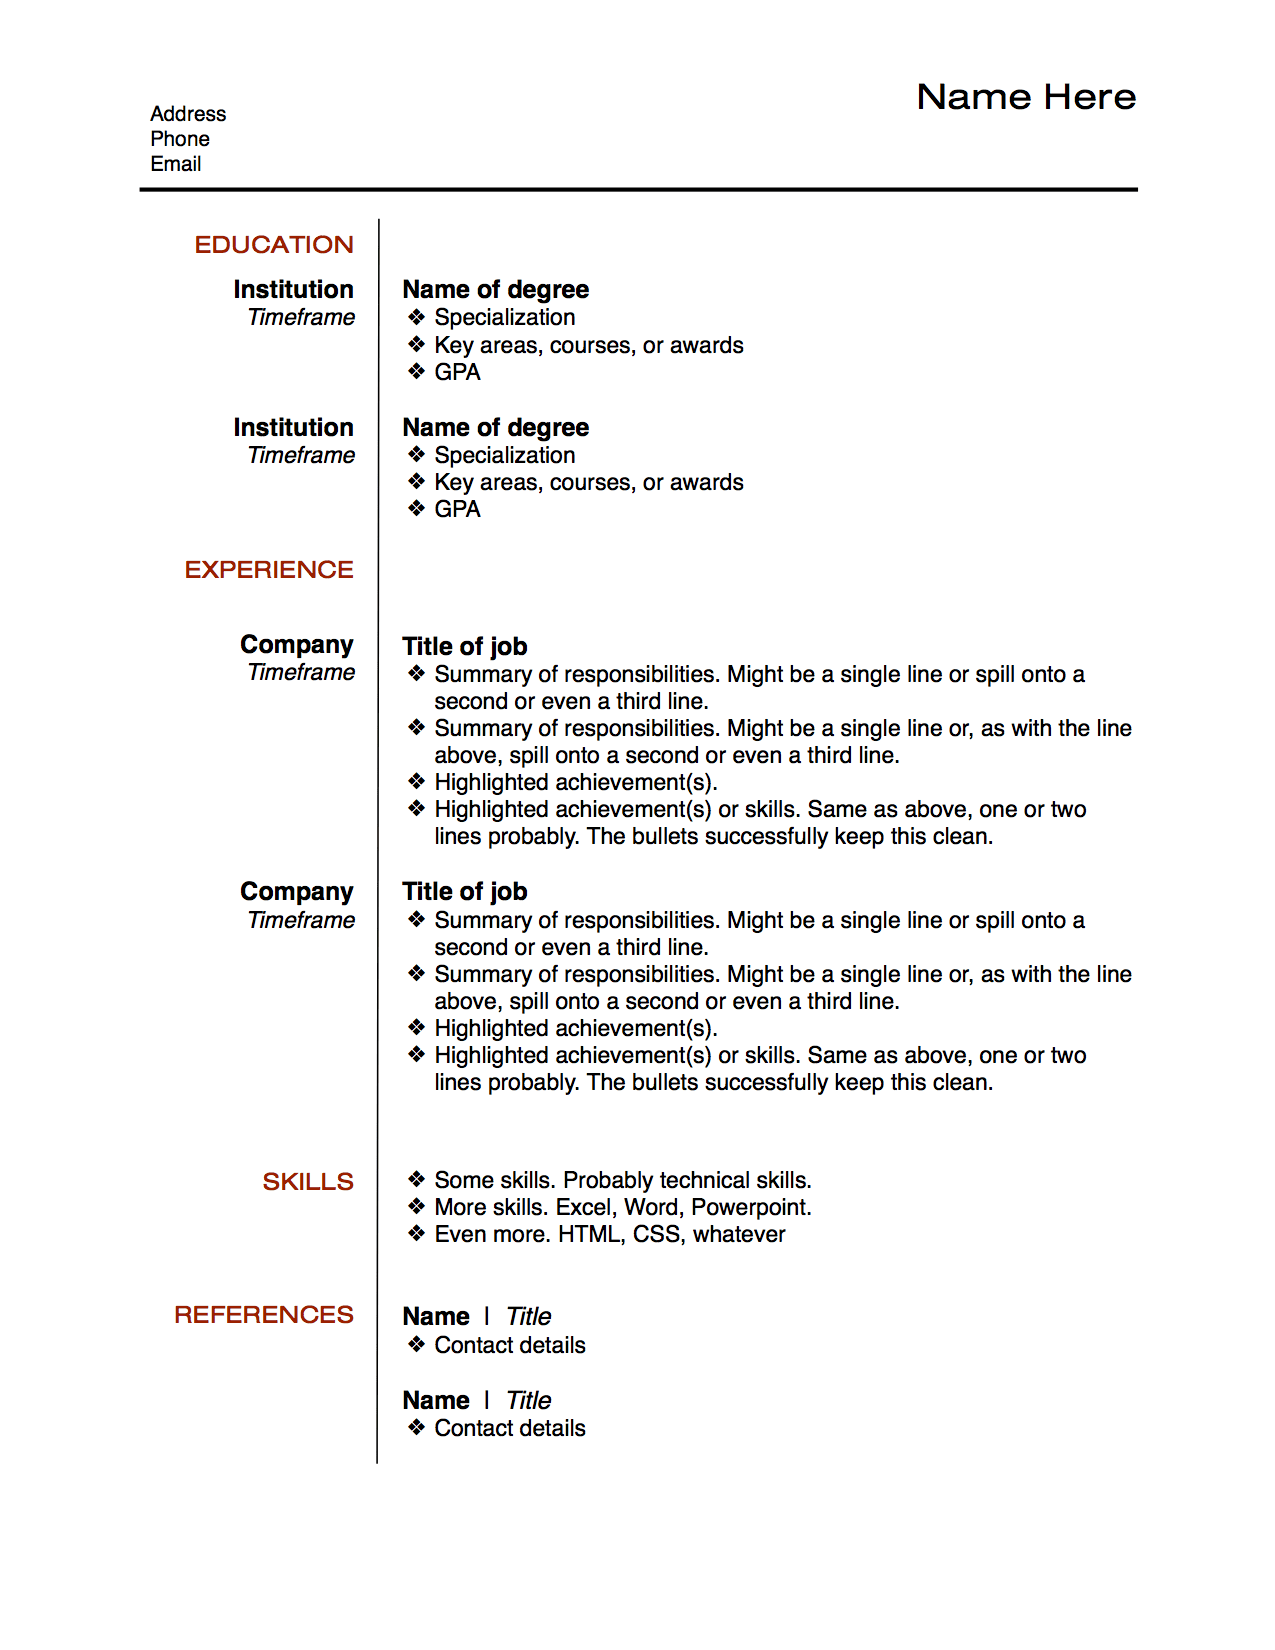 Proper What Resume Look Should